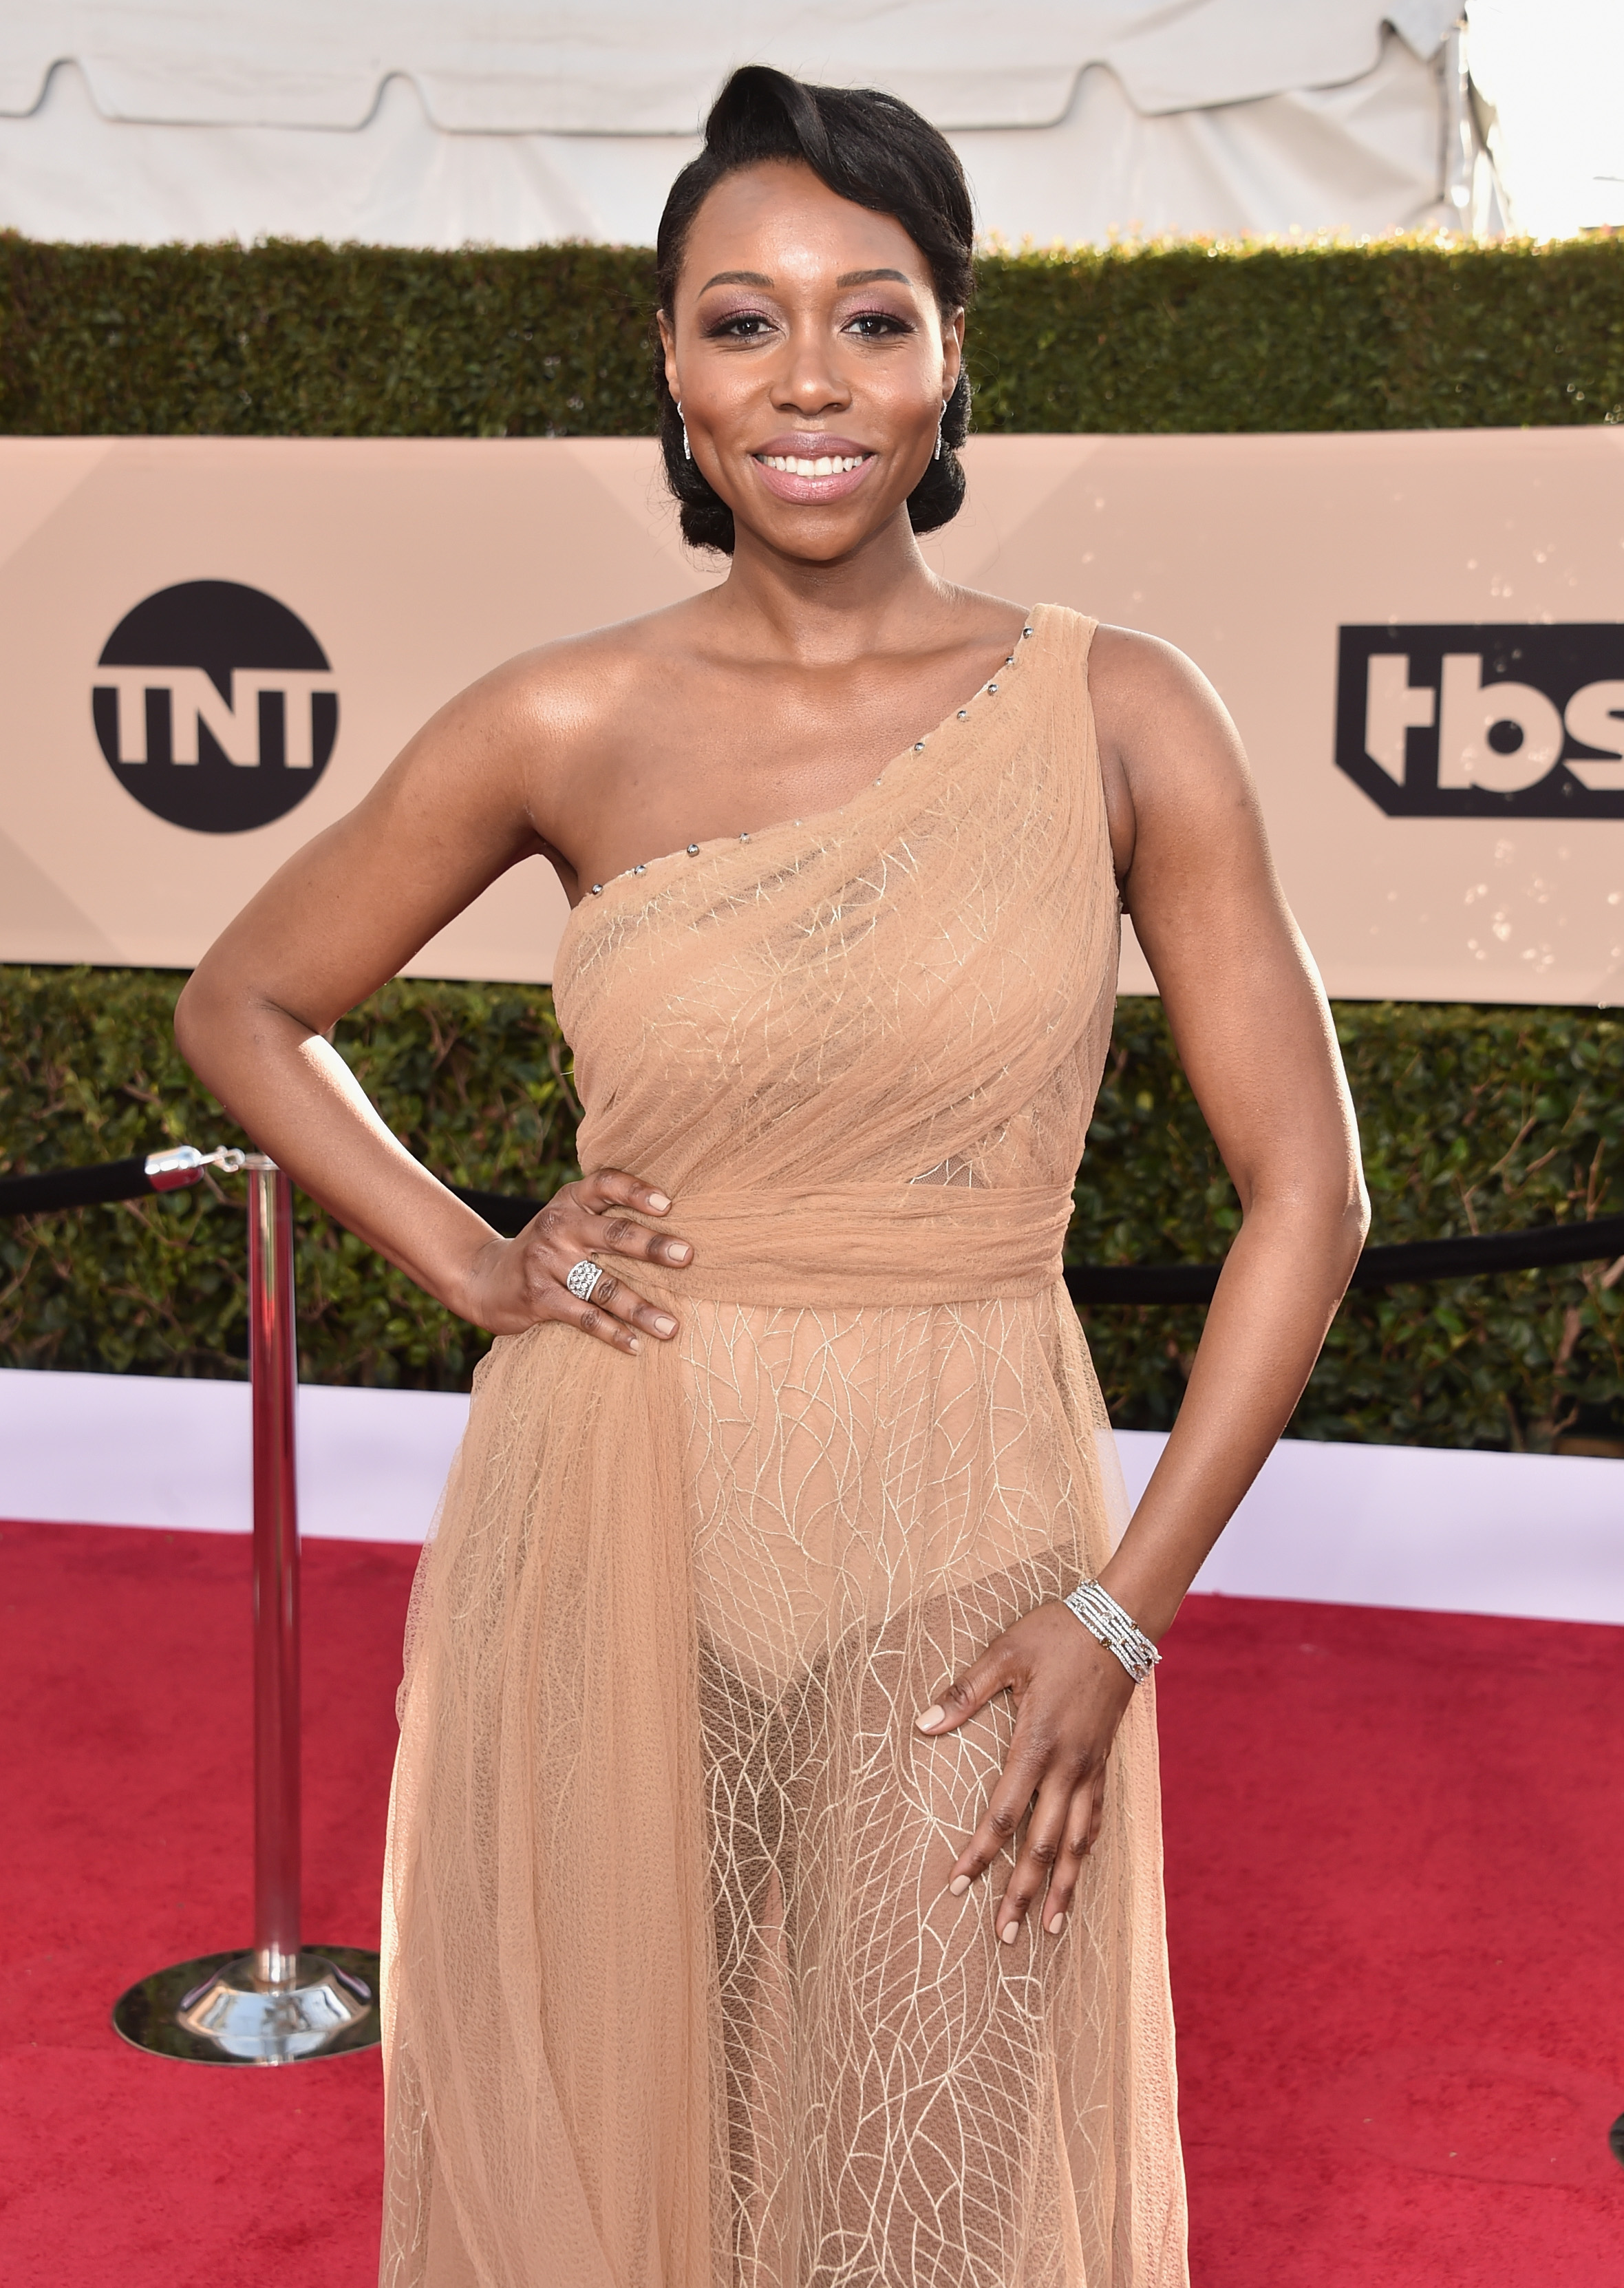 Actor Amanda Warren says that while she feels empowered by the MeToo movement, it remains to be seen what longlasting impact it will actually have on Hollywood (Getty Images)